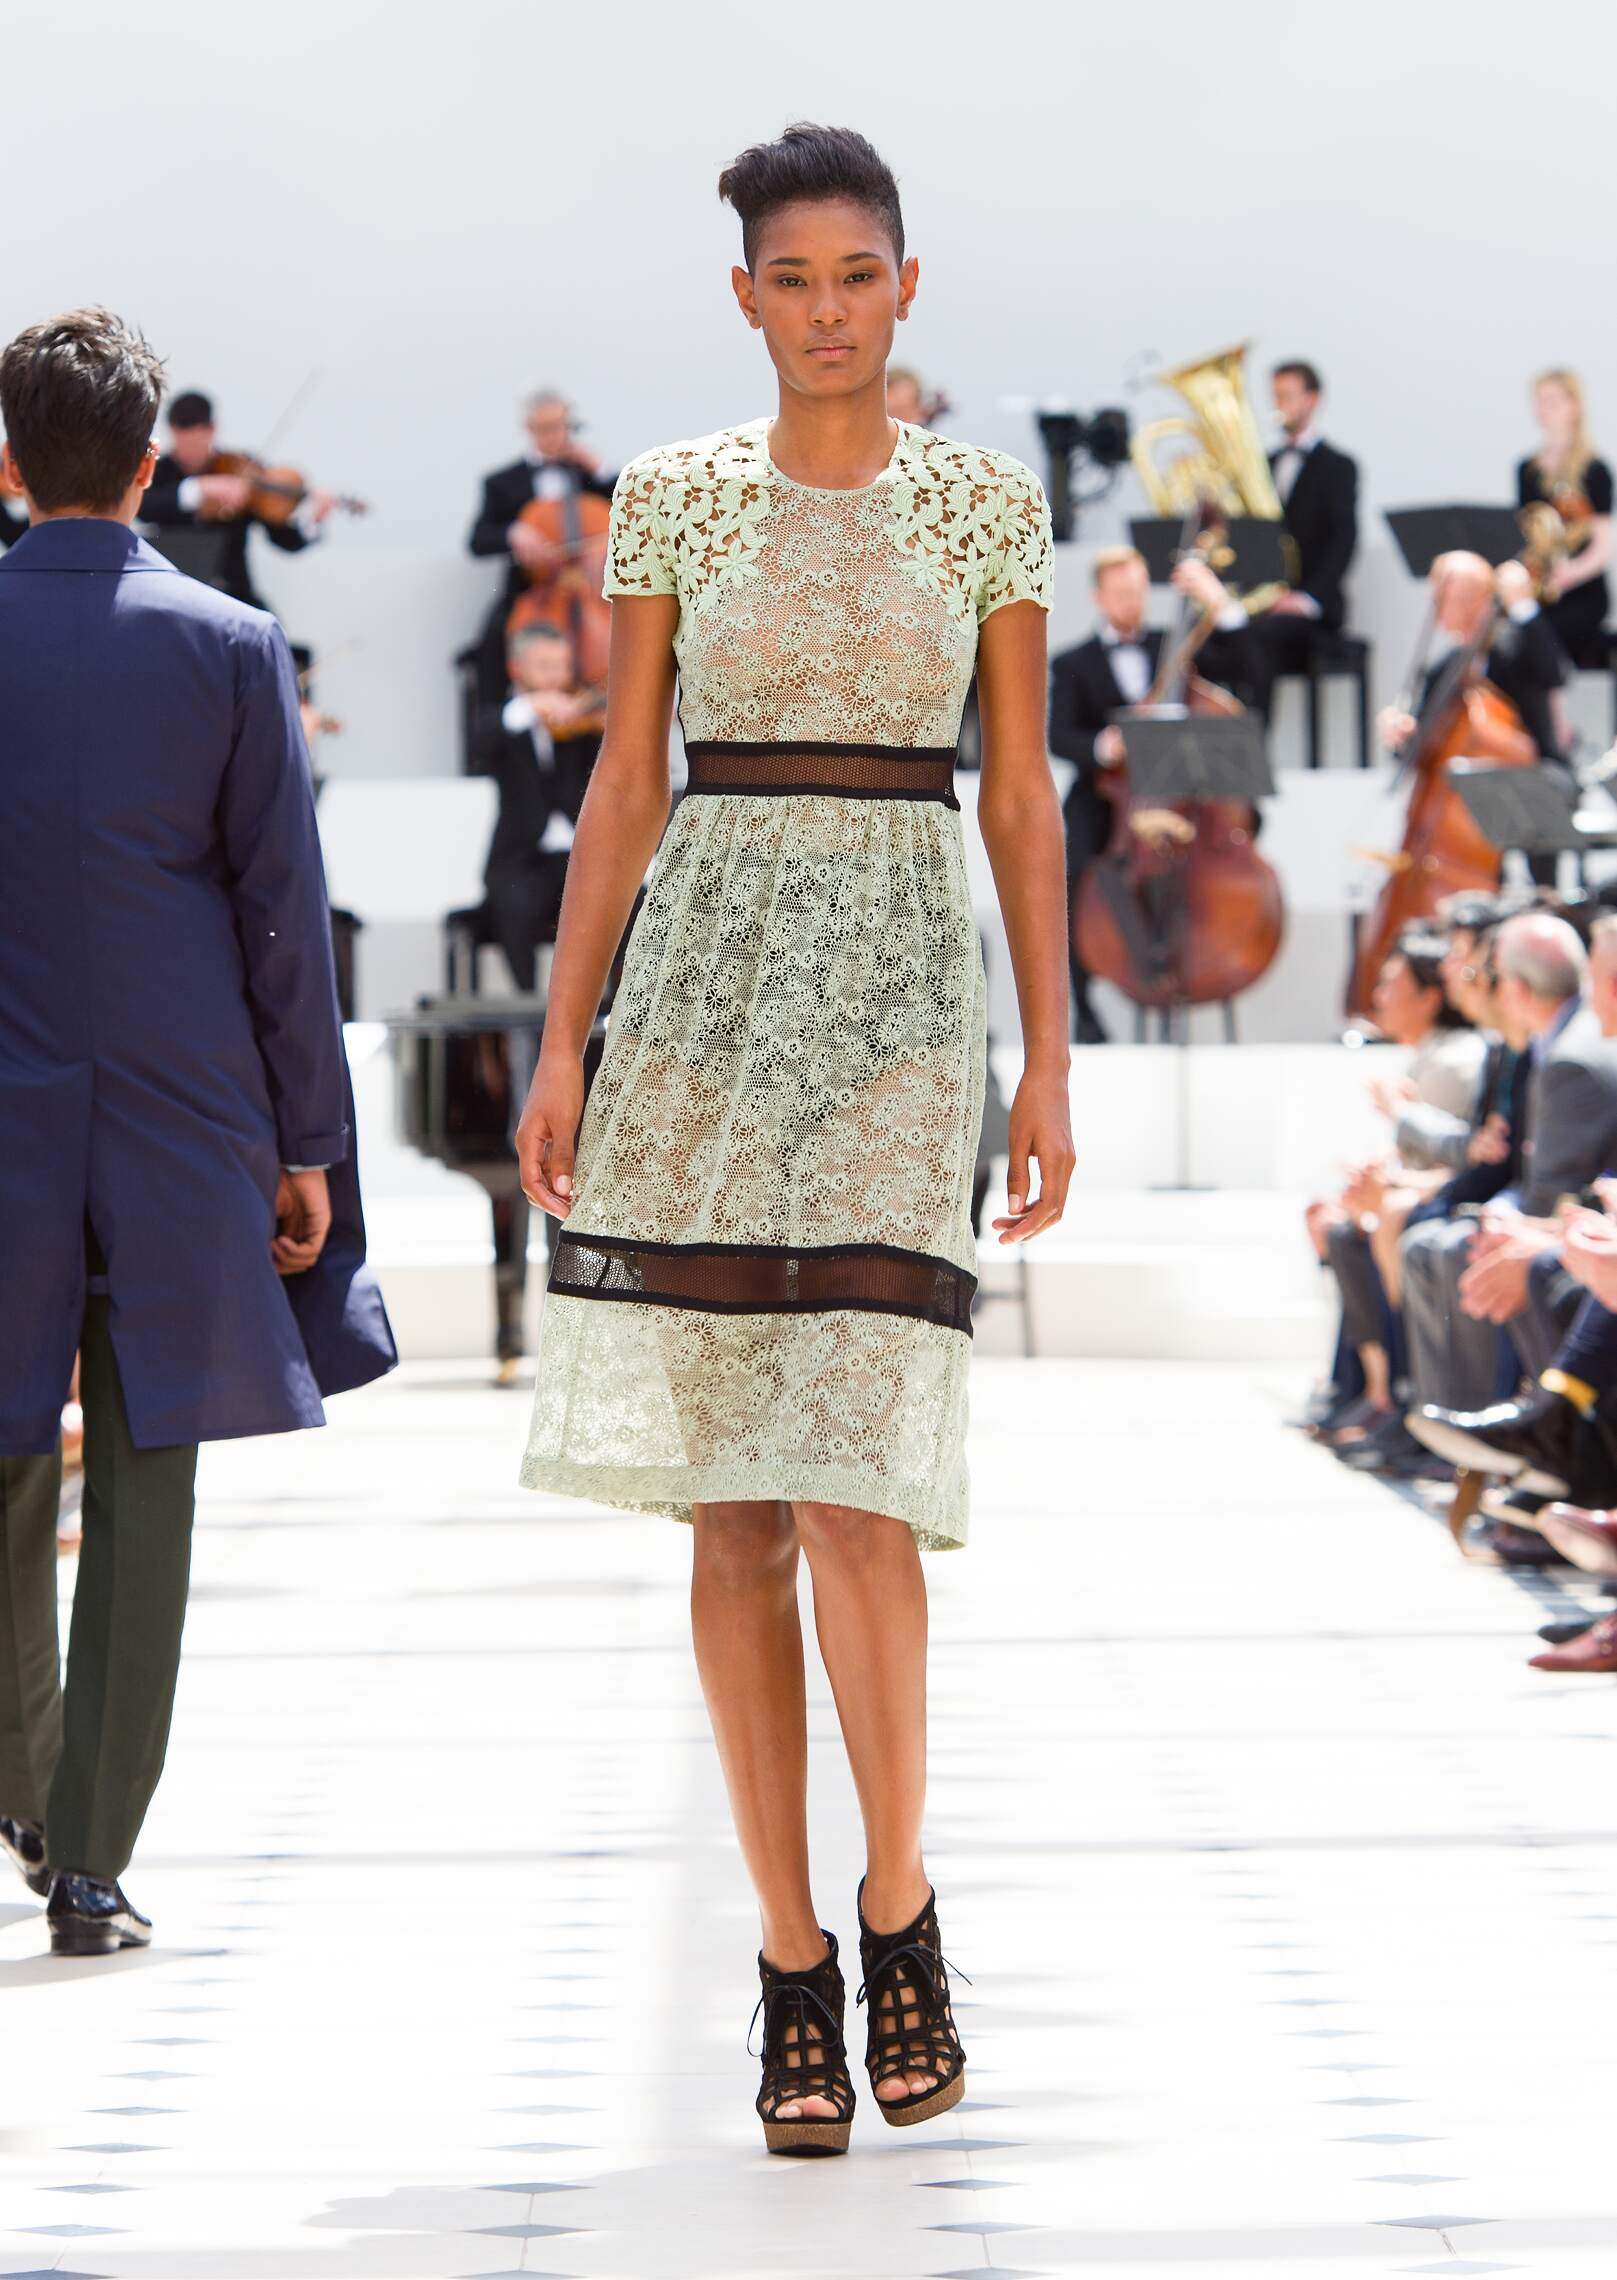 Burberry Prorsum Spring Summer 2016 Womenswear Collection London Fashion Week Fashion Show